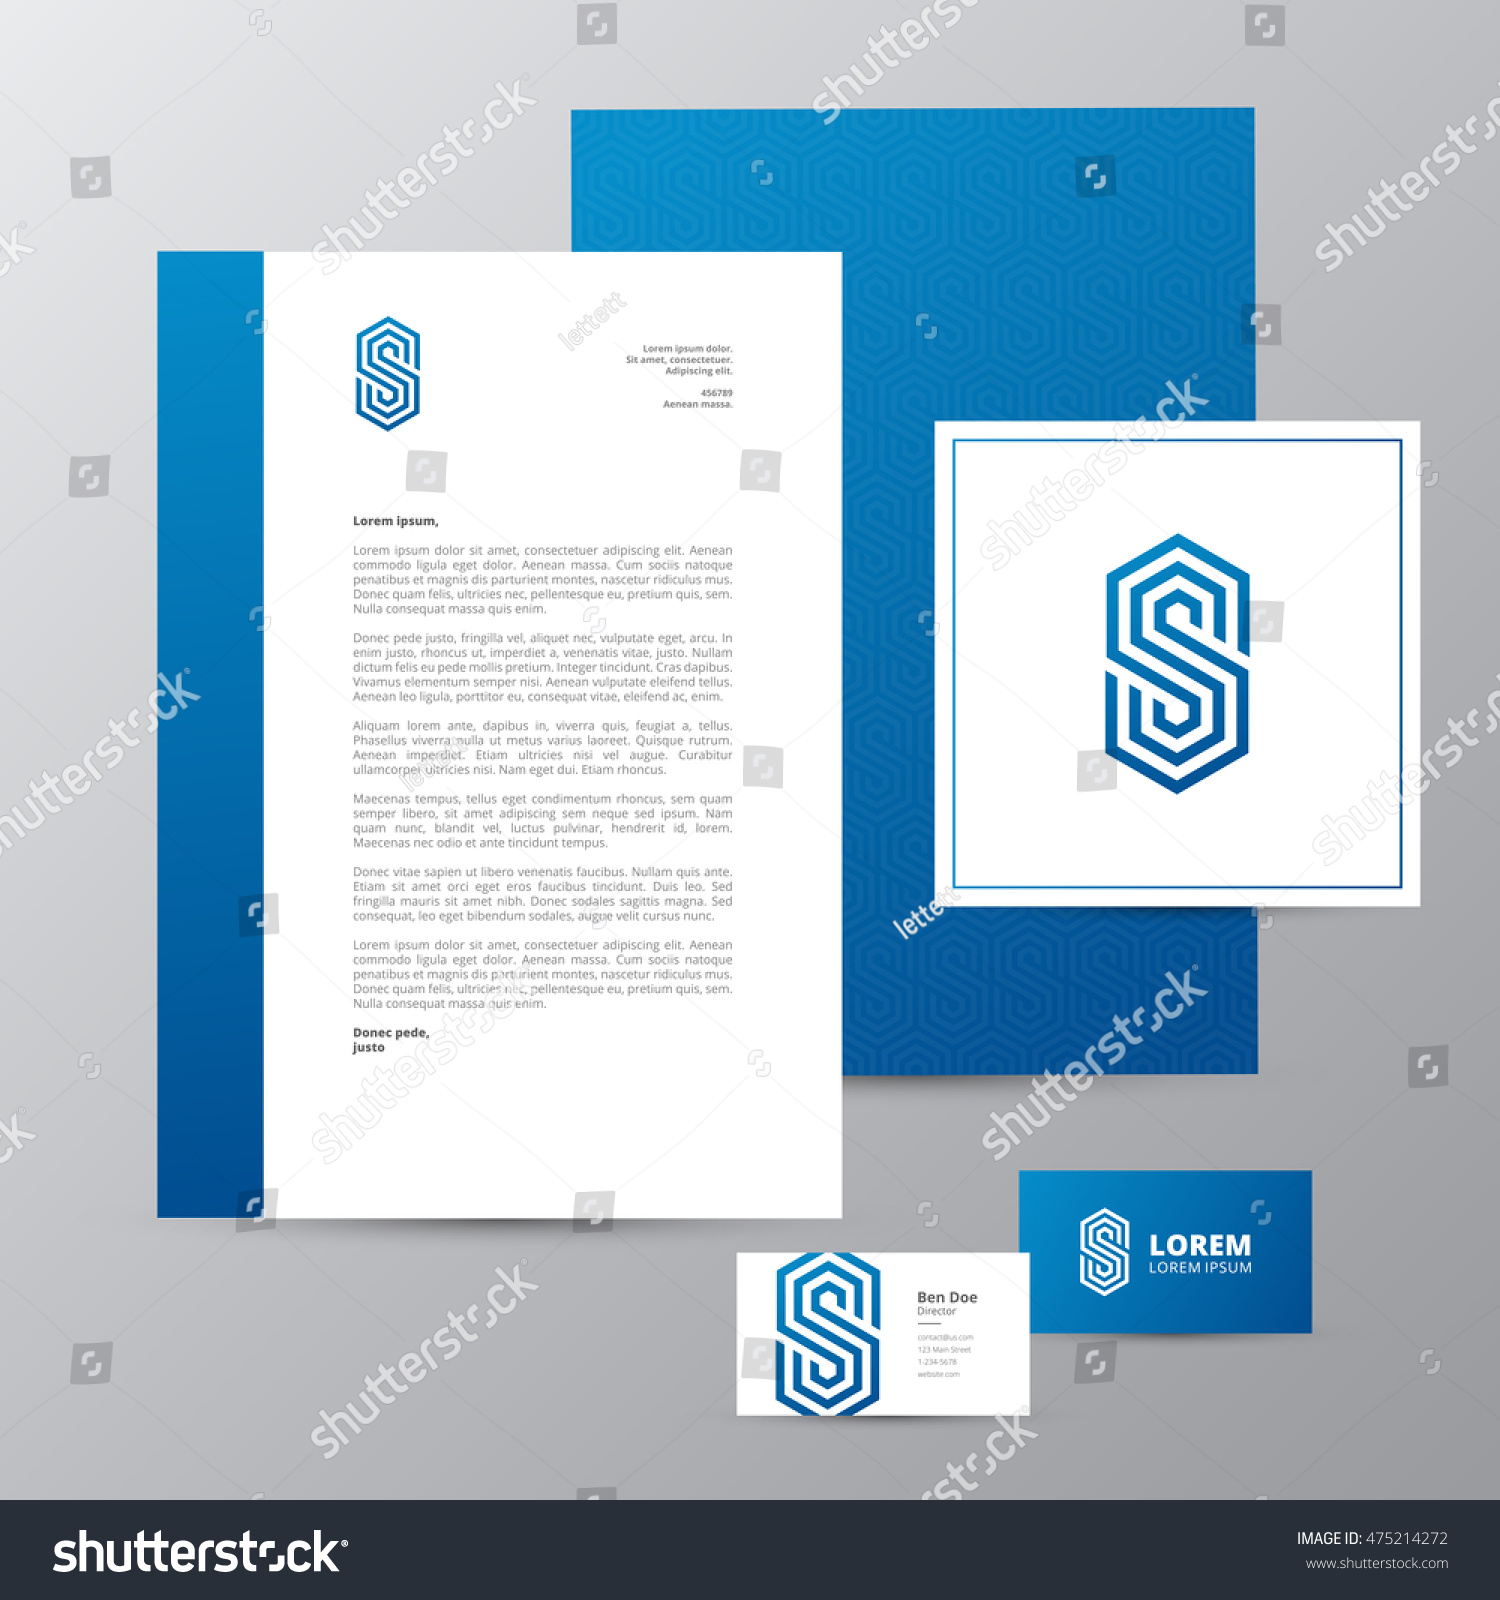 Letterhead and business cards image collections free business cards letter s logo letterhead business card stock vector 475214272 letter s logo letterhead and business card magicingreecefo Images